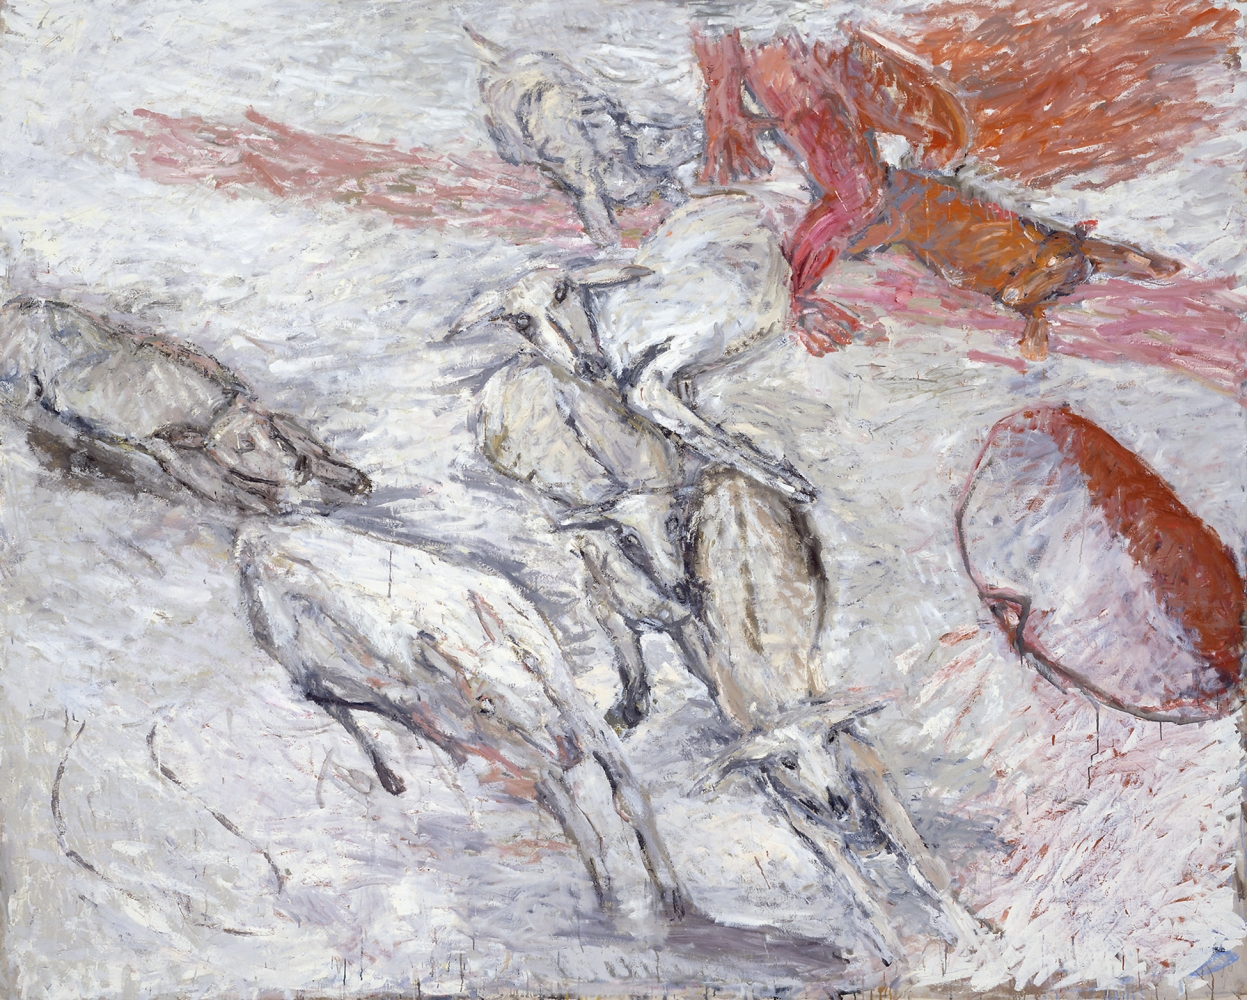 aerial view of five deer being chased by two dogs with two partial and abstracted human figures